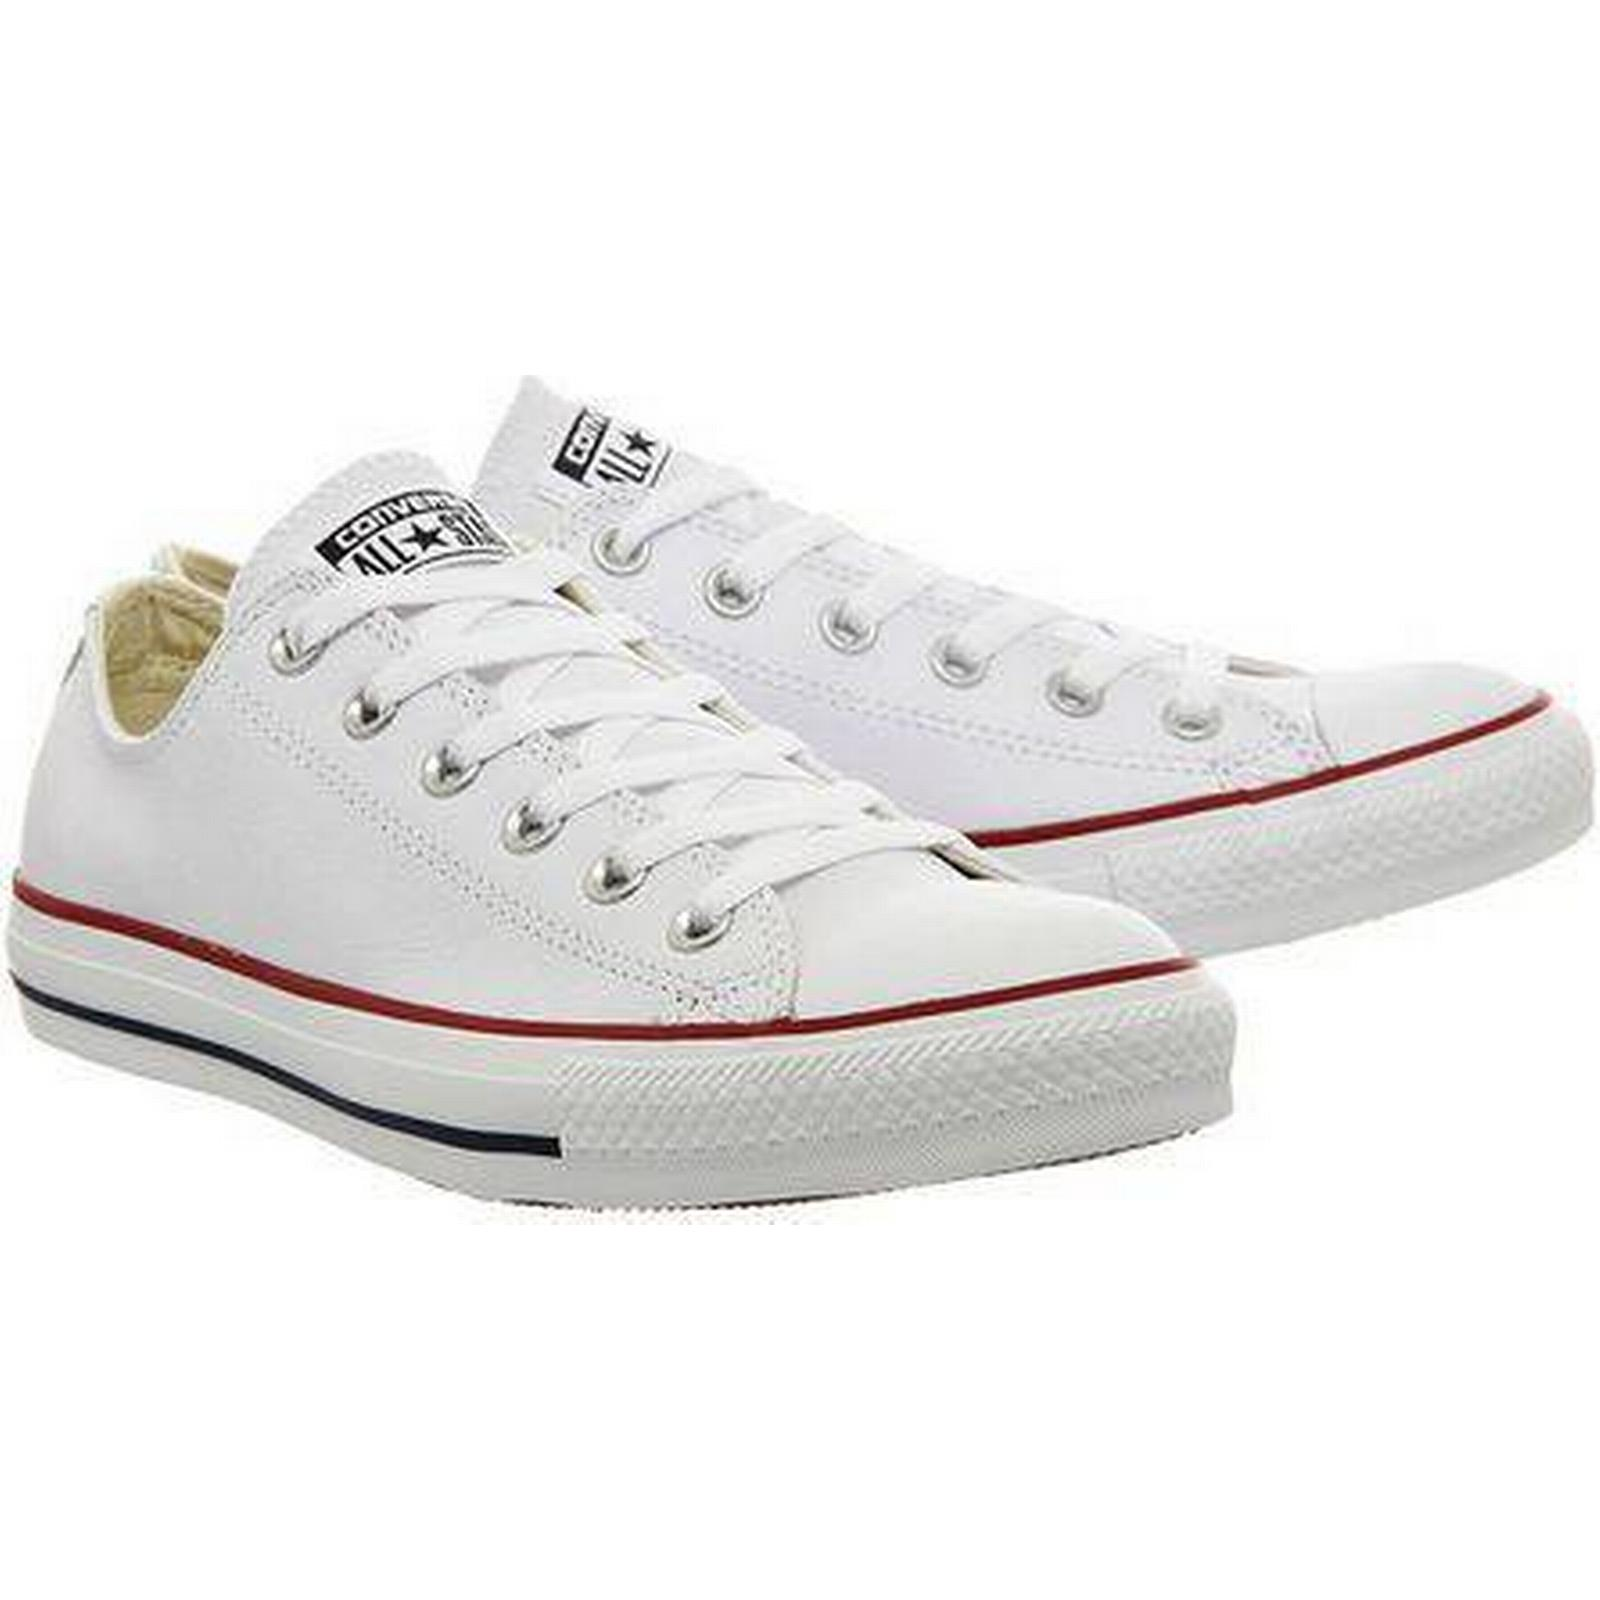 Womens All Star Low Leather Trainers By Converse White Supplied Office 1664fd